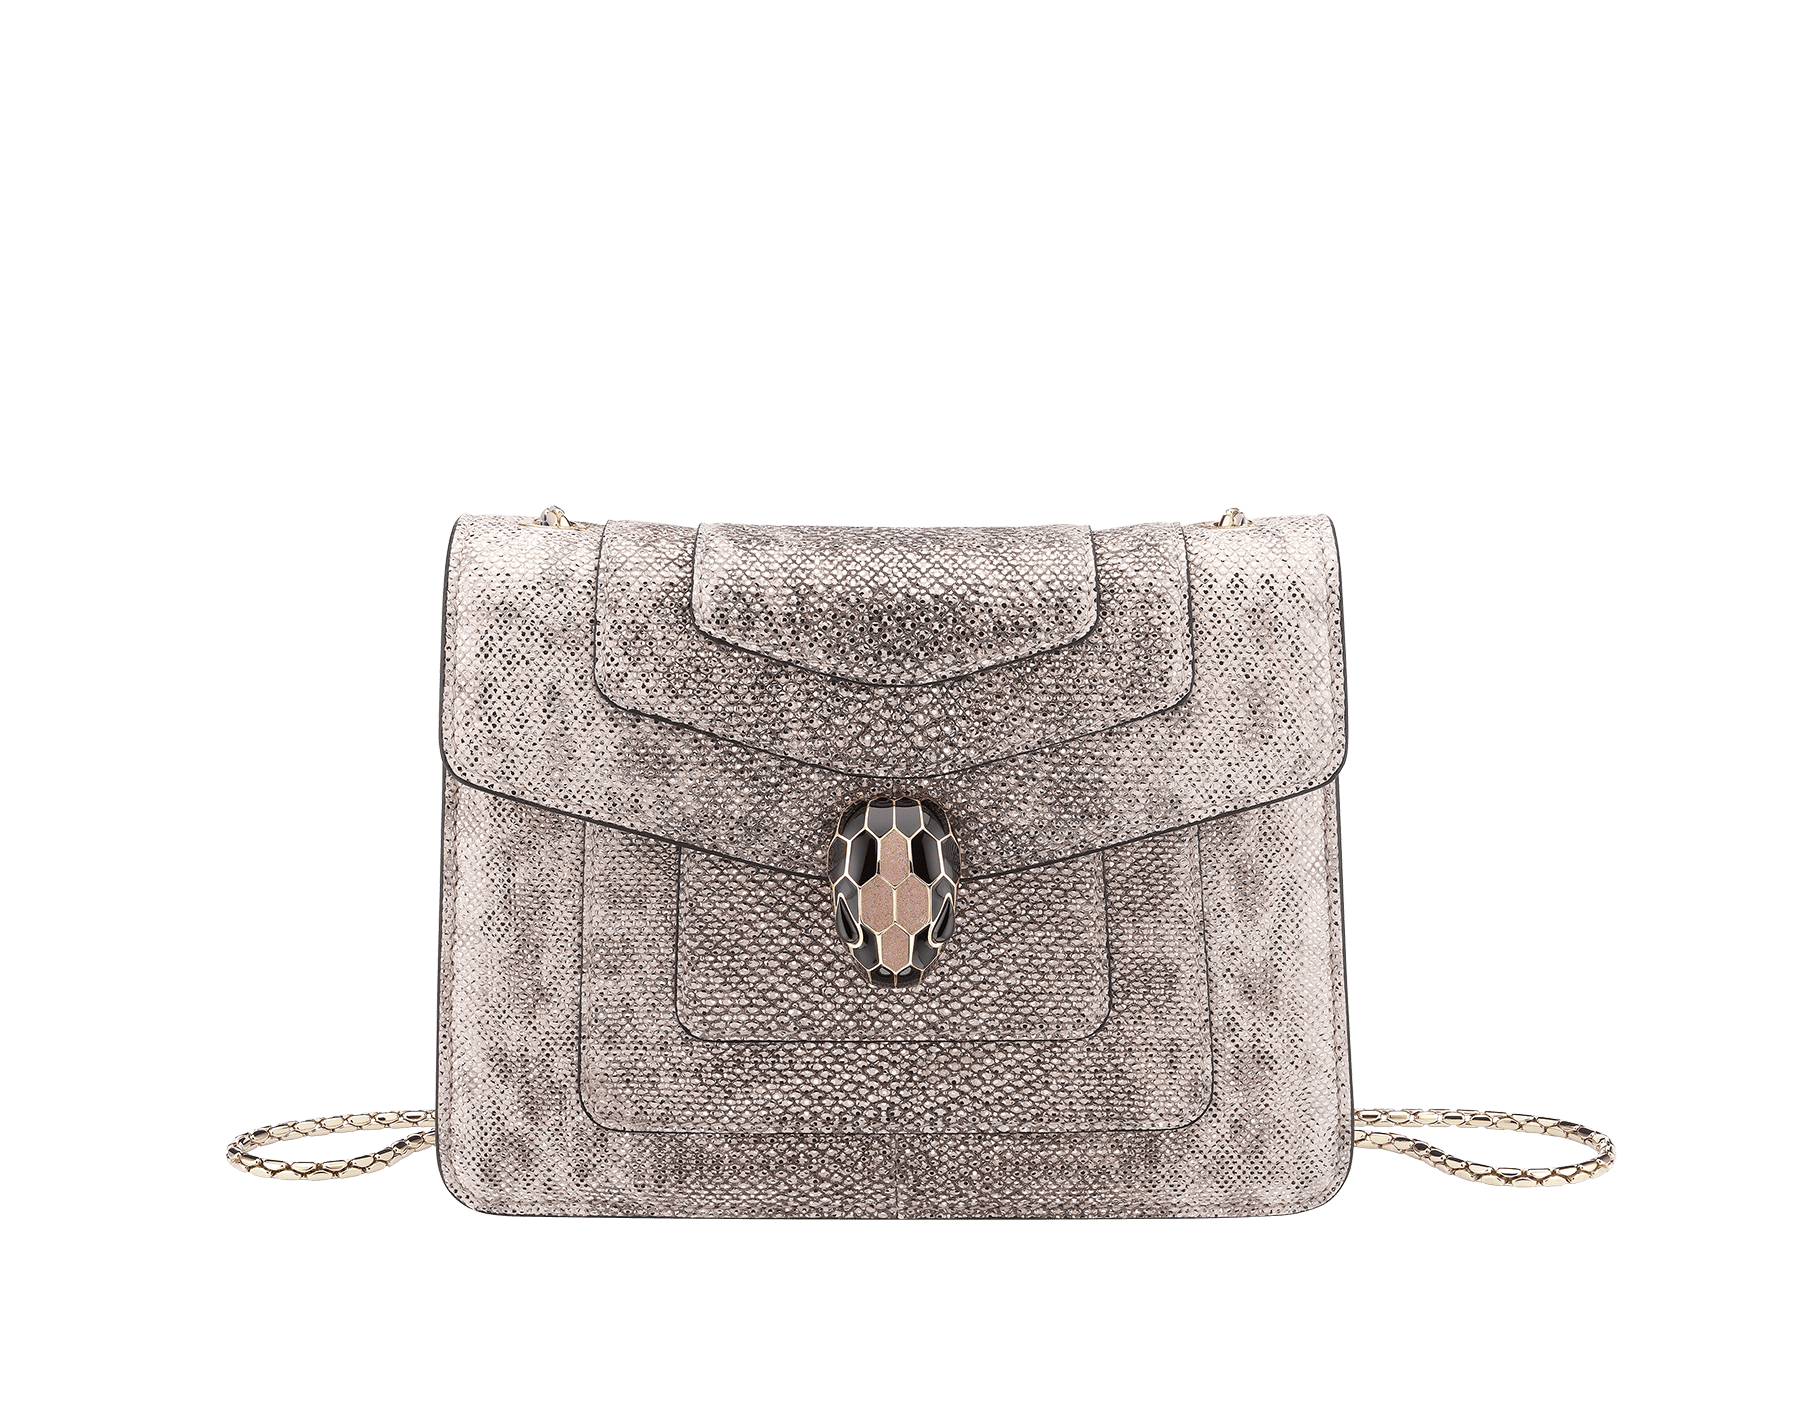 """""""Serpenti Forever"""" crossbody bag in crystal rose metallic karung skin. Iconic snakehead closure in light gold plated brass enriched with glitter rose gold and shiny black enamel and black onyx eyes 287087 image 1"""